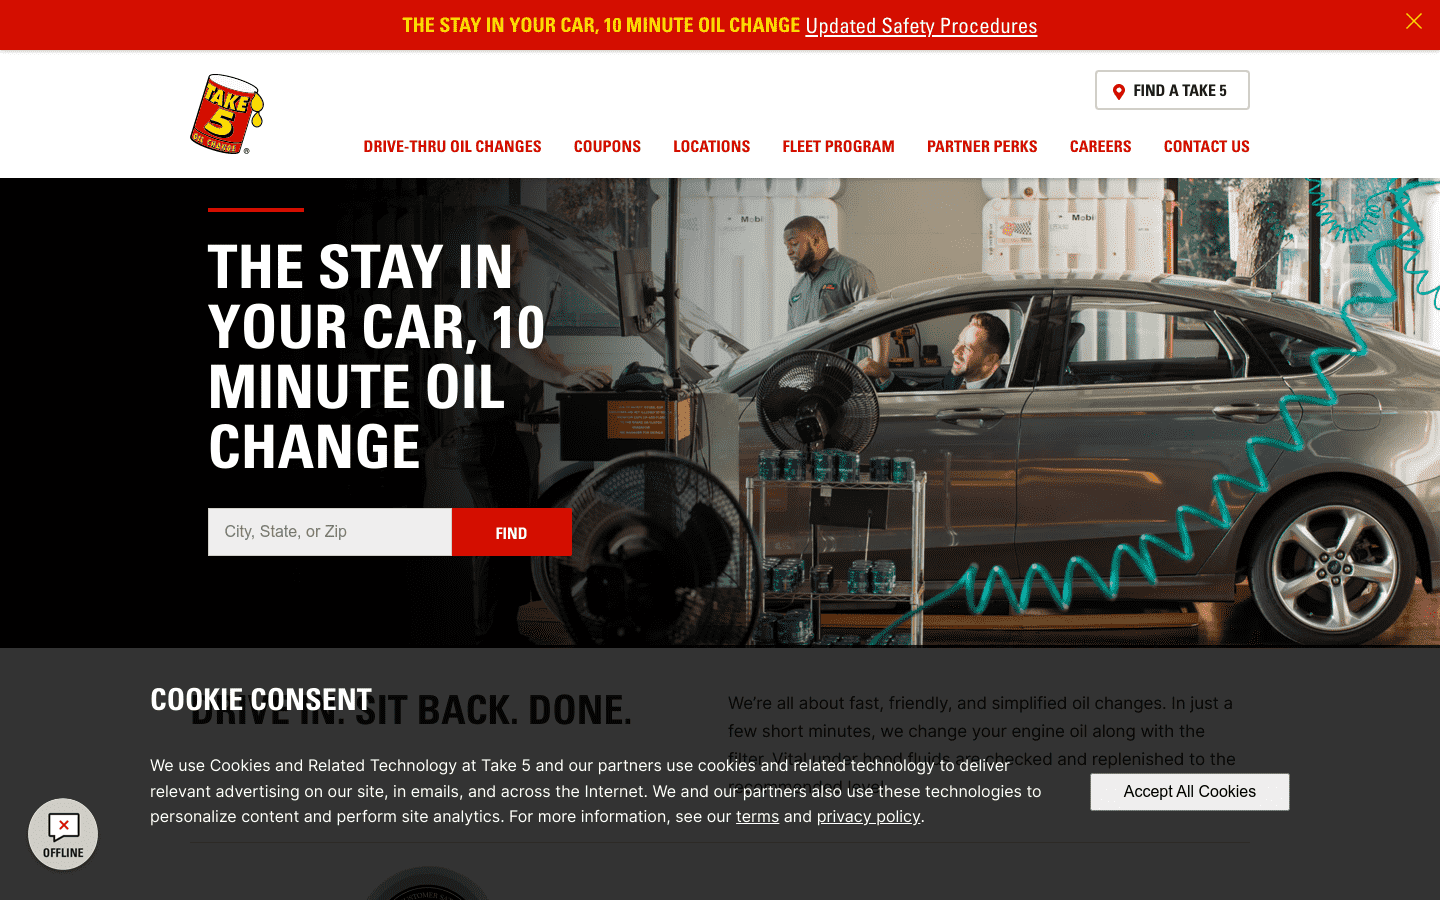 Take 5 Oil Change reviews and complaints